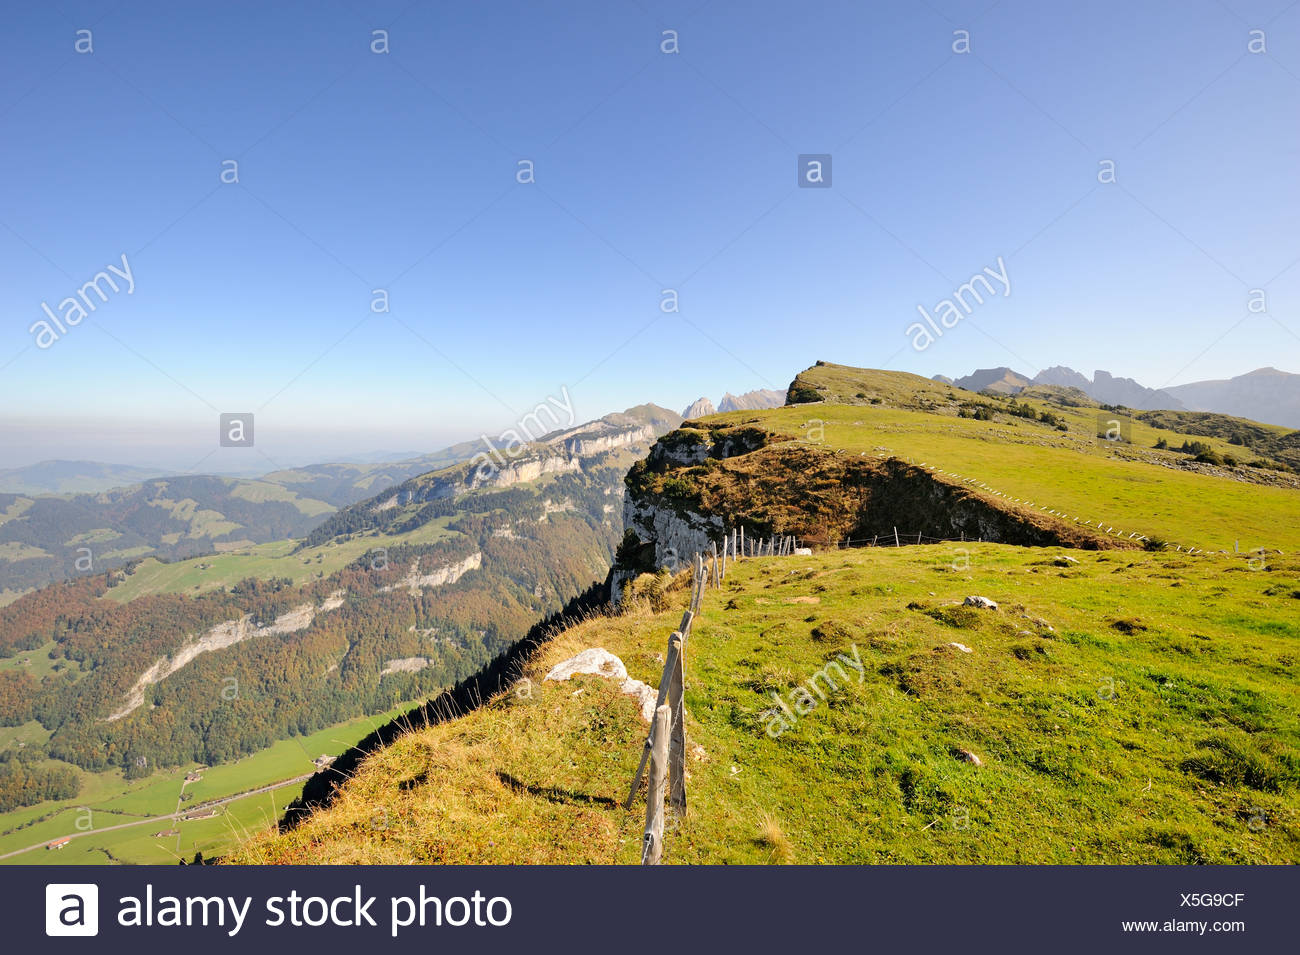 Escarpment on the high plateau Alp Sigel, 1730 m, with the view over the Appenzell region towards Ebenalp Mountain - Stock Image